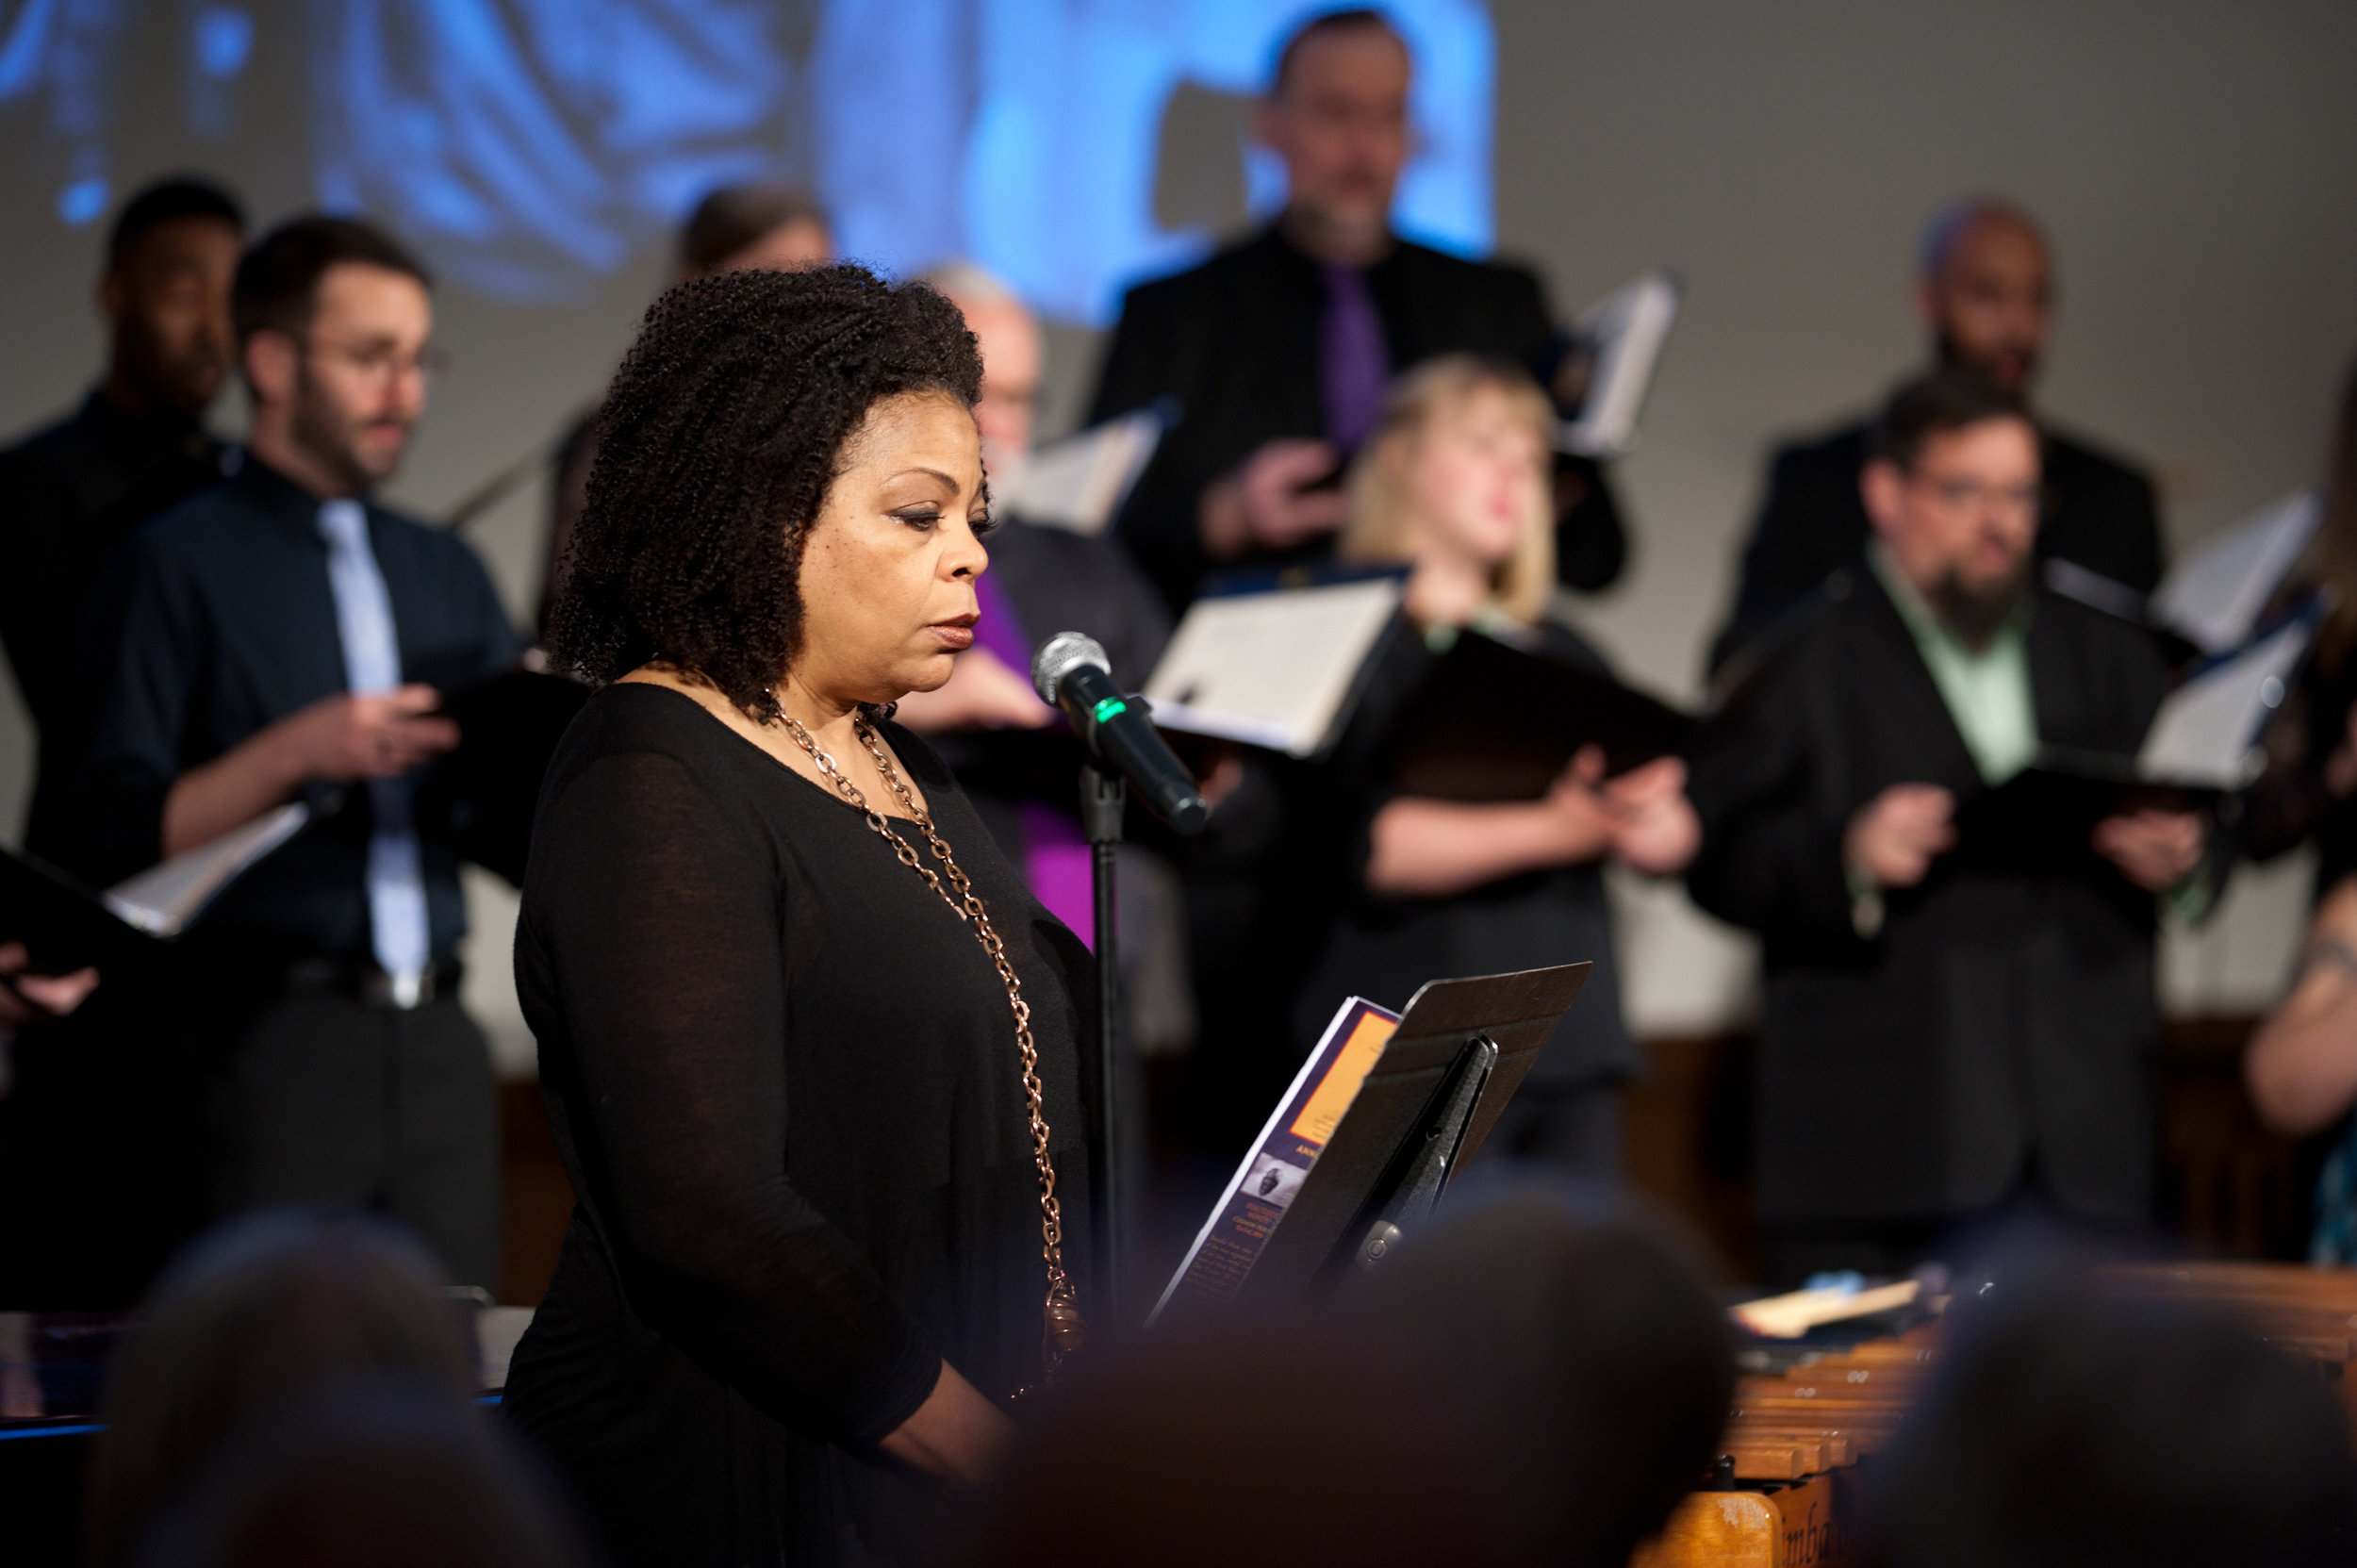 Poet in Residence S. Renee Mitchell performs with the choir for the world premiere of Damien Geter's piece  The Talk: Instructions for Black Children When They Interact with the Police. (Photo Credit: Rachel Hadiashar)